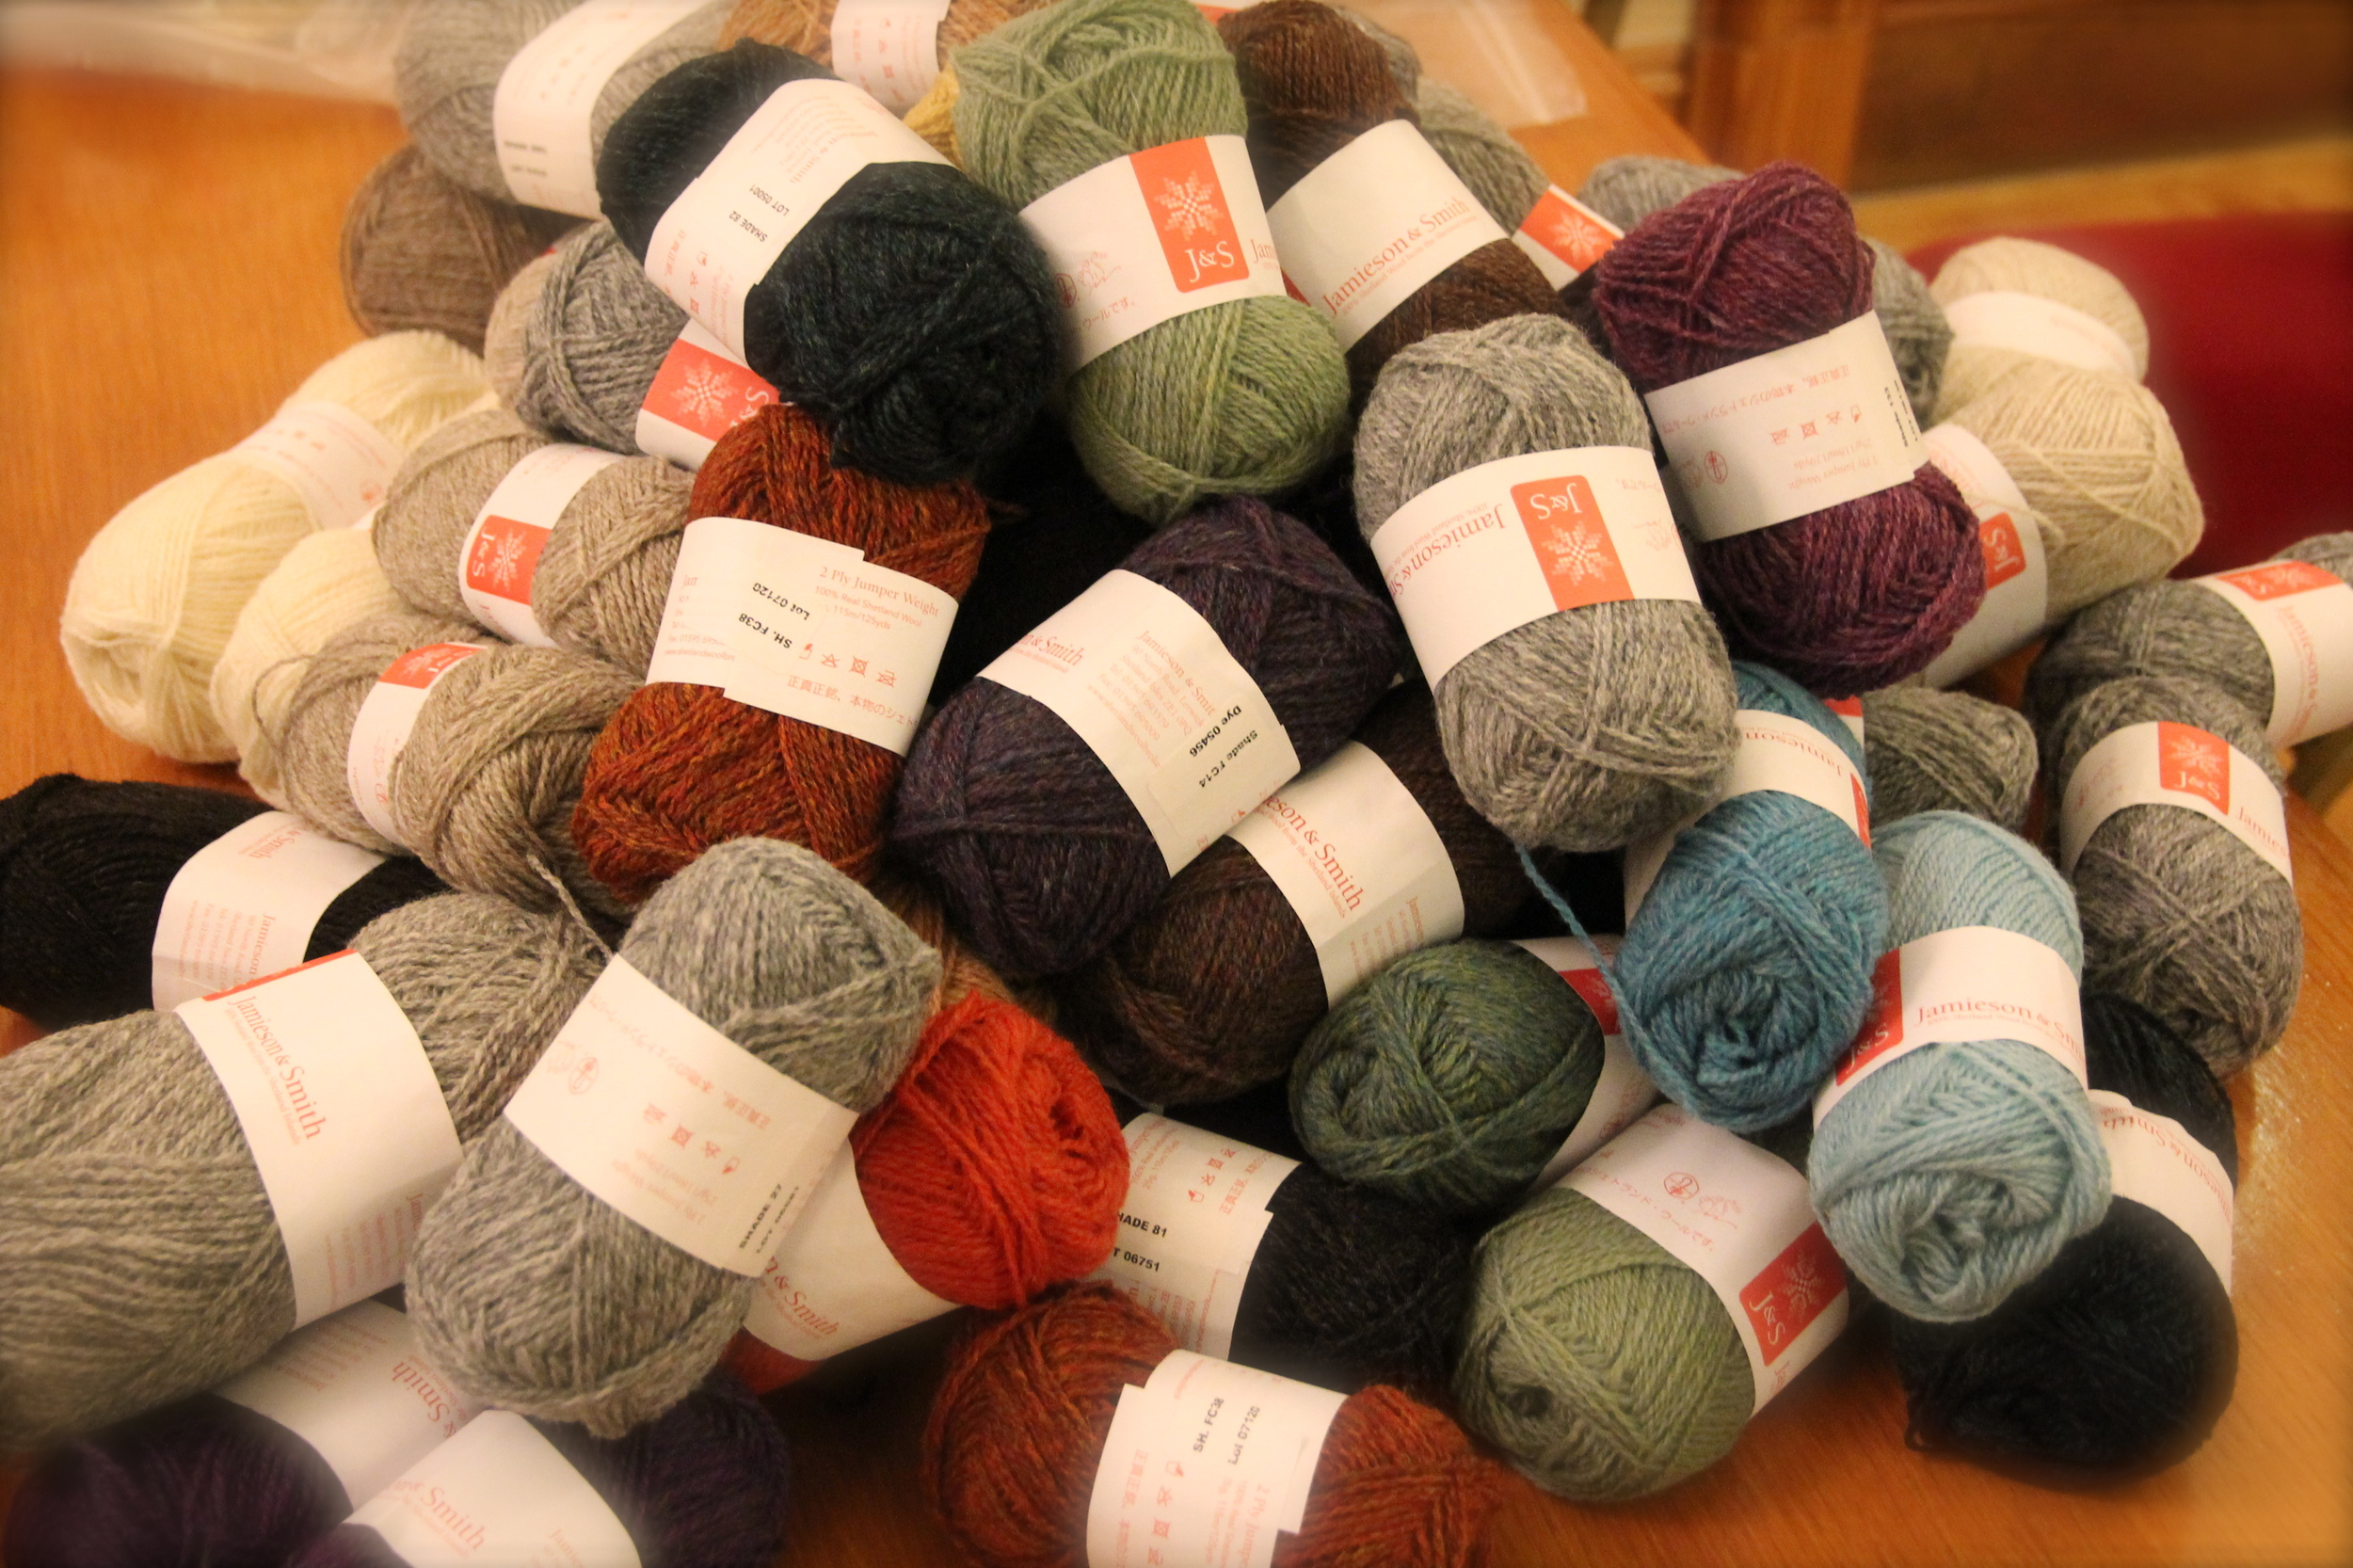 Pile of Glory:  Jamieson & Smith 2 ply Jumper Weight & Shetland Supreme....mmm